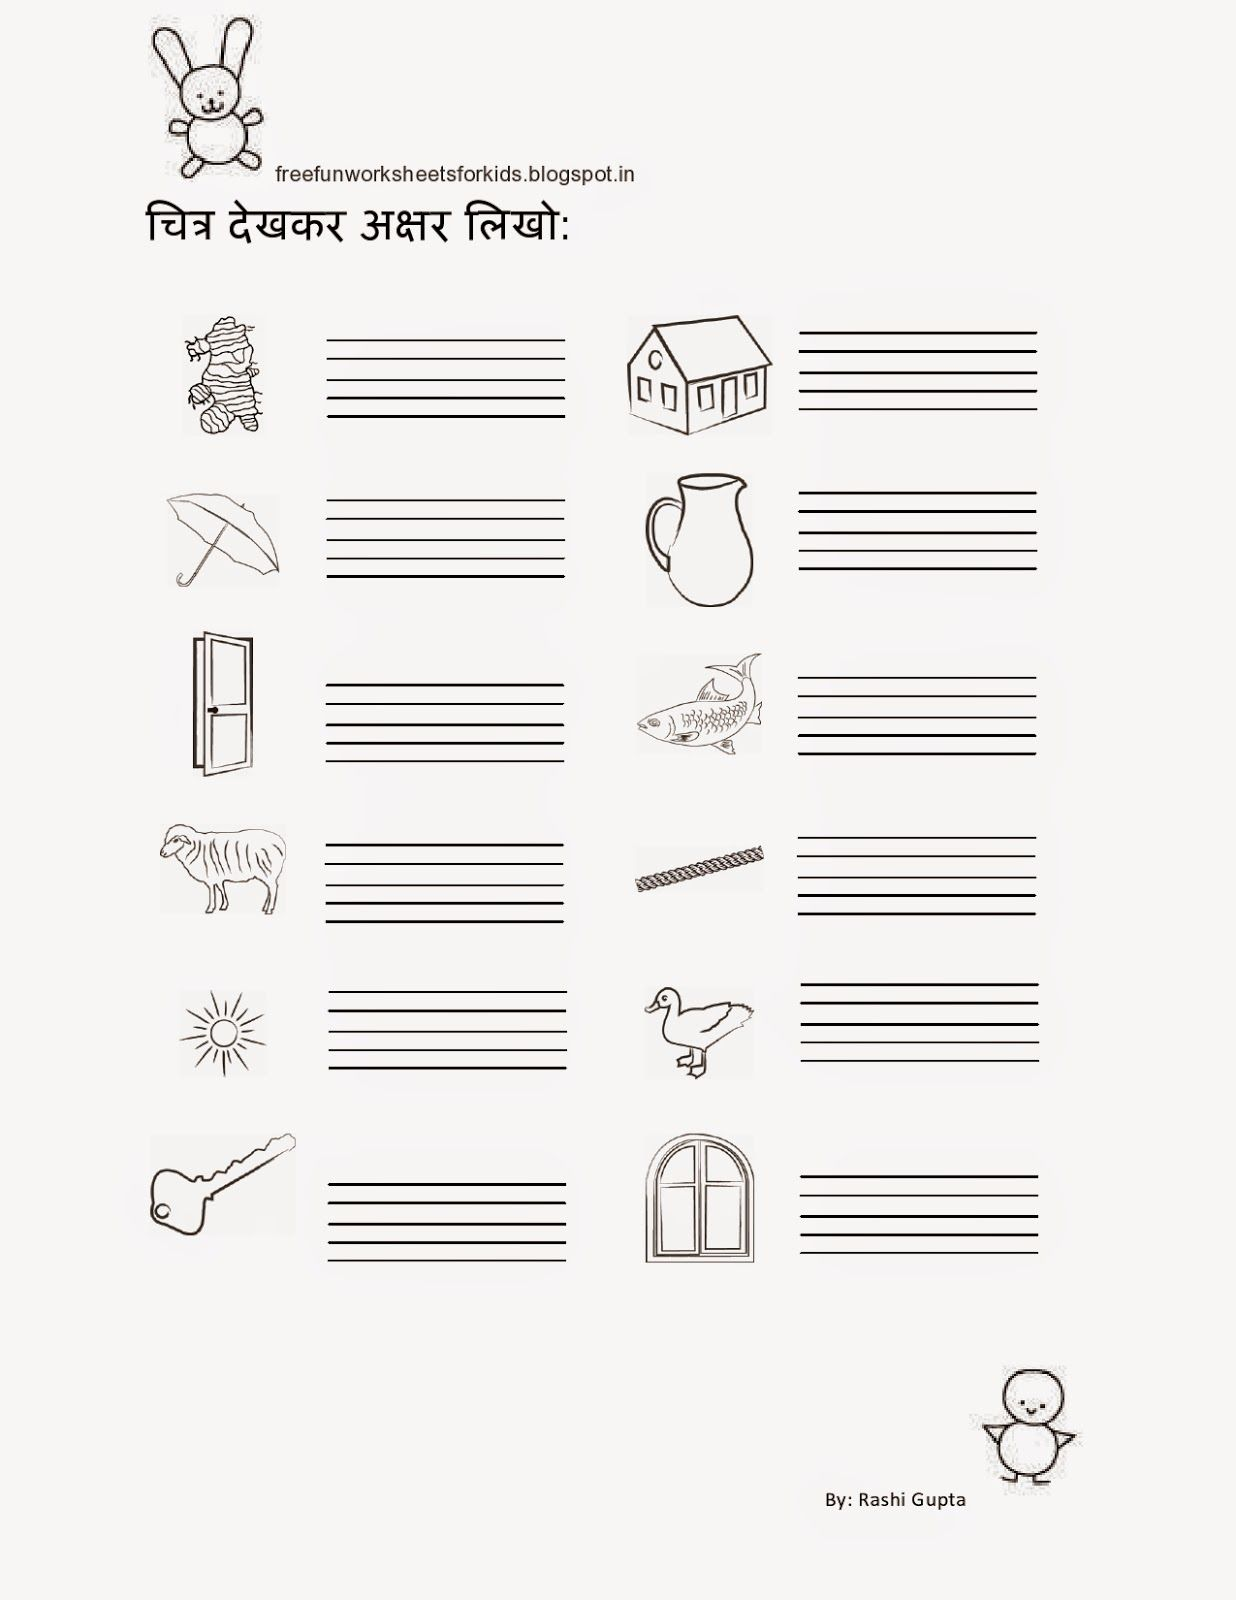 Free Fun Worksheets For Kids Free Printable Fun Hindi Worksheets For Class Kg À¤š À¤¤ À¤° À¤¦ À¤–कर À¤…क À¤·à¤° À¤² Hindi Worksheets 1st Grade Worksheets Language Worksheets